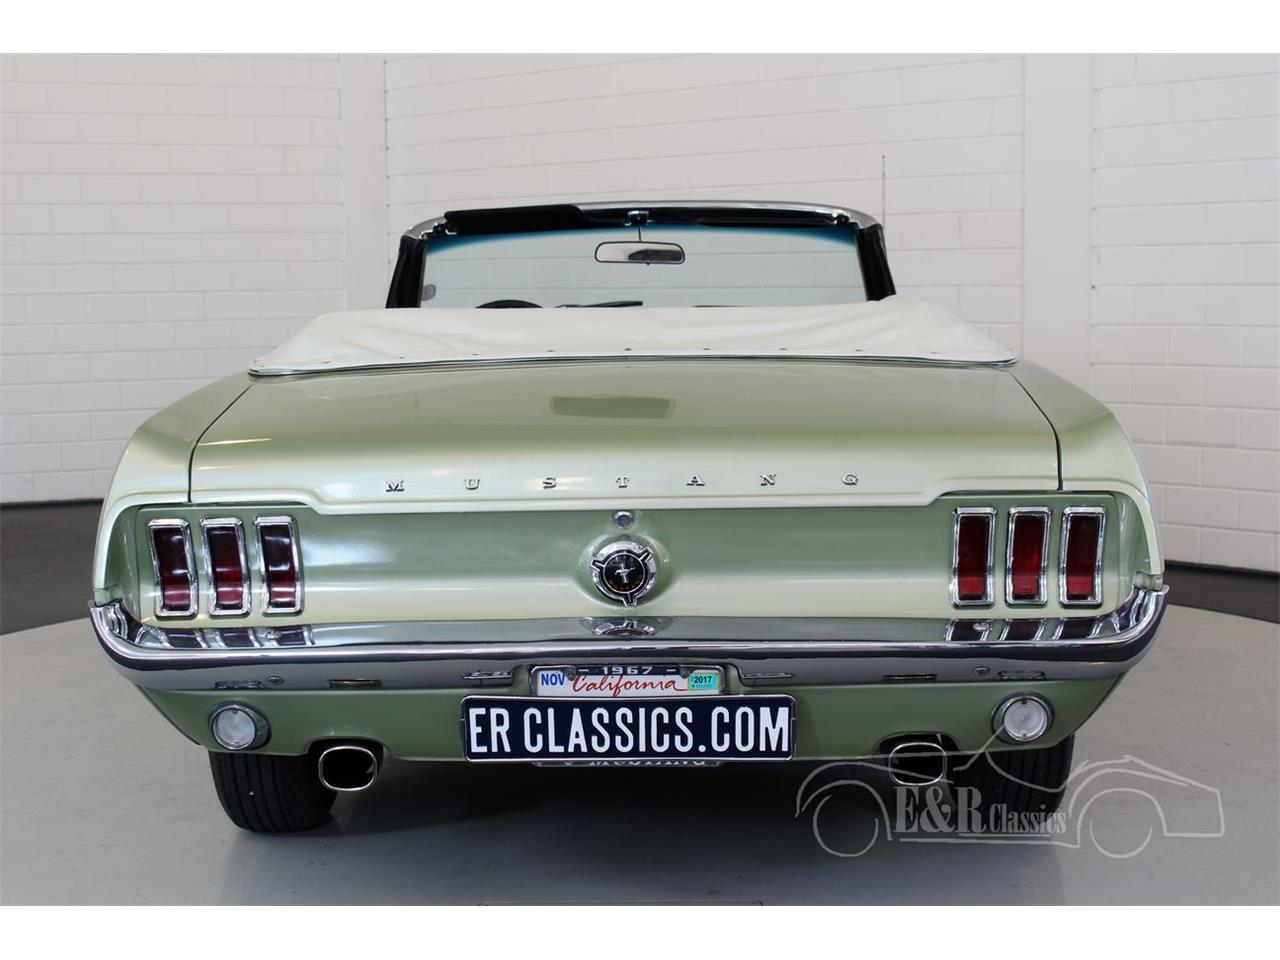 Large Picture of Classic '67 Ford Mustang located in Waalwijk noord brabant - $39,035.00 - Q2ZB